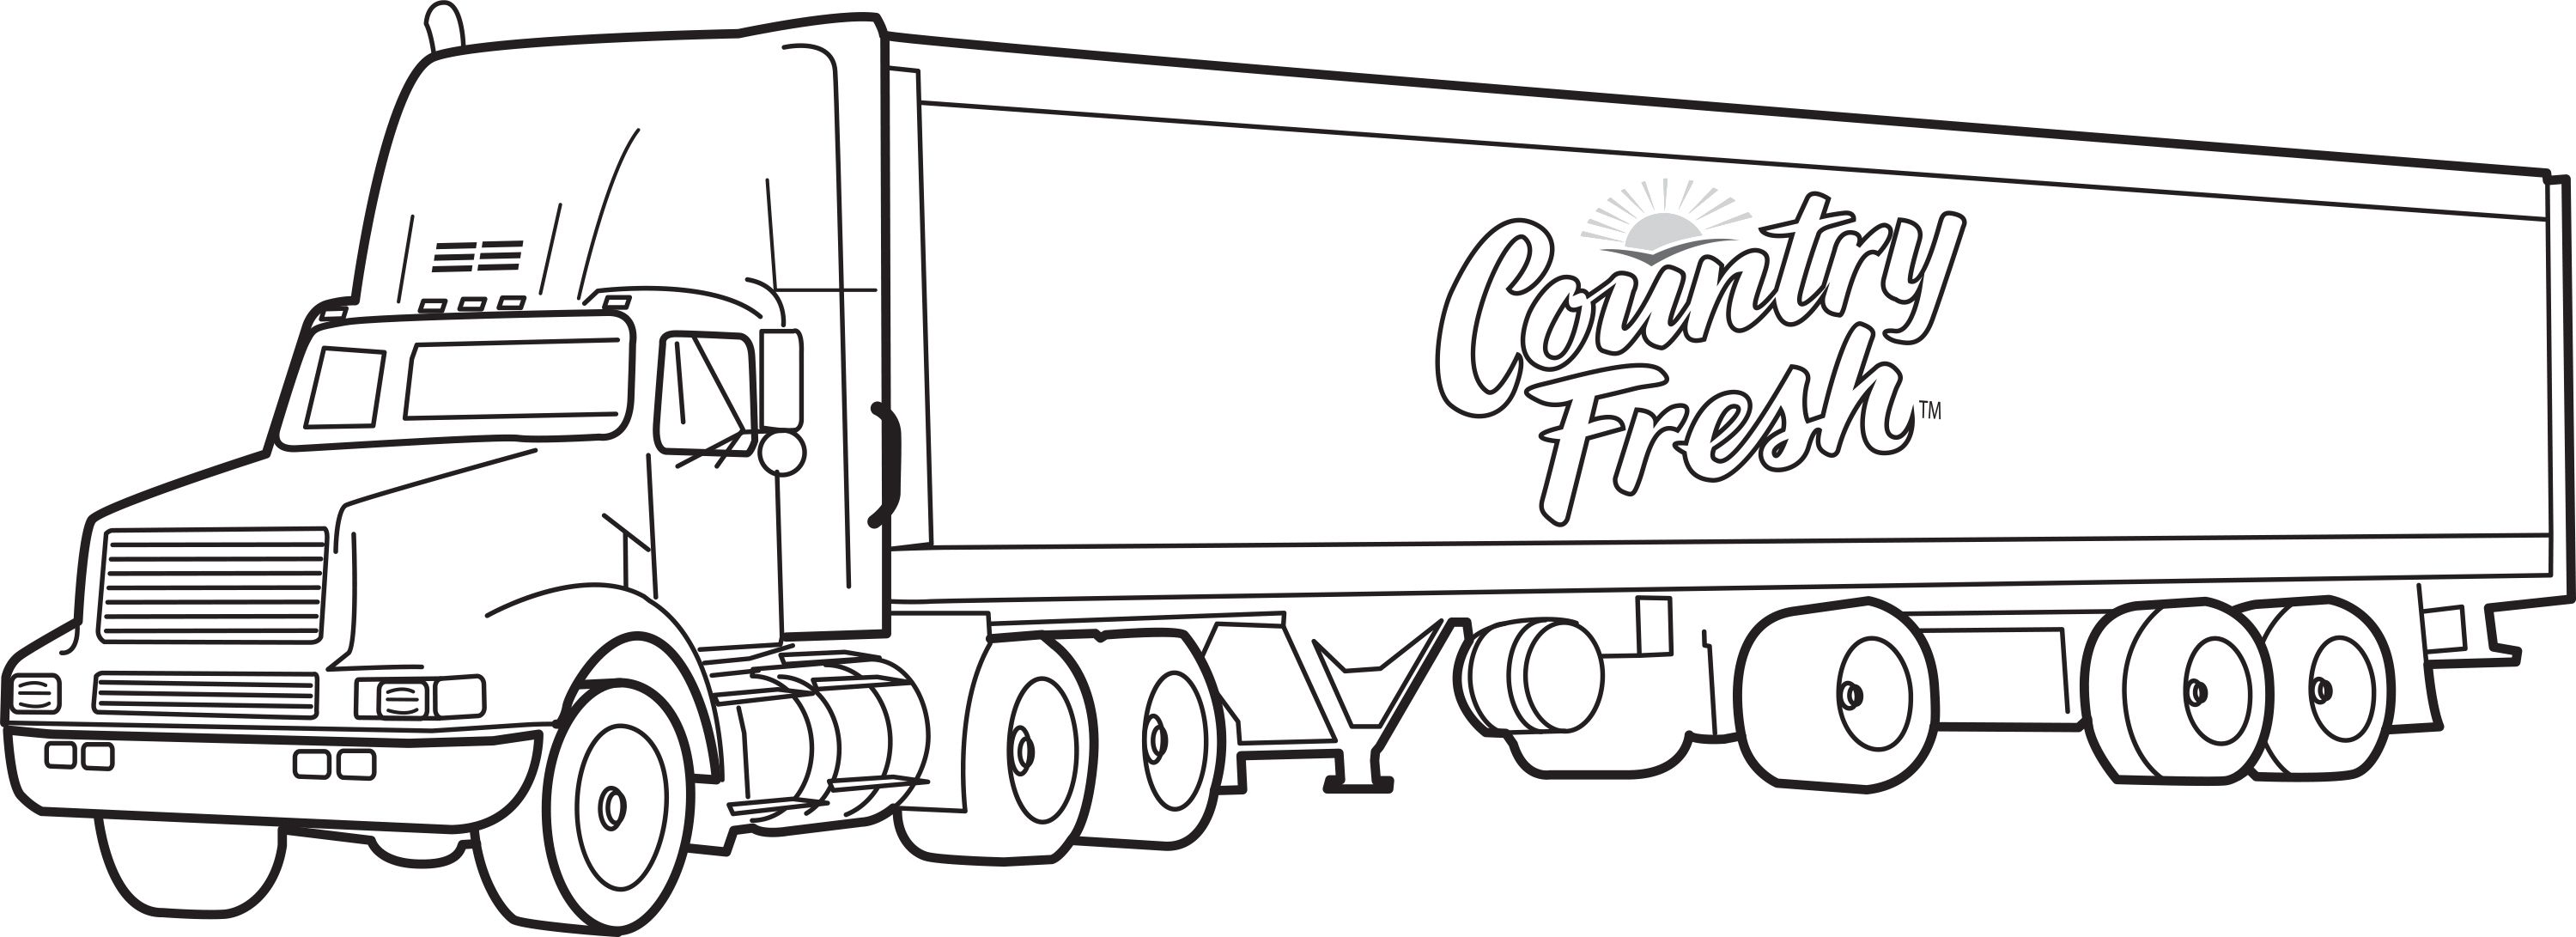 18 Wheeler Coloring Pages Wallpapers